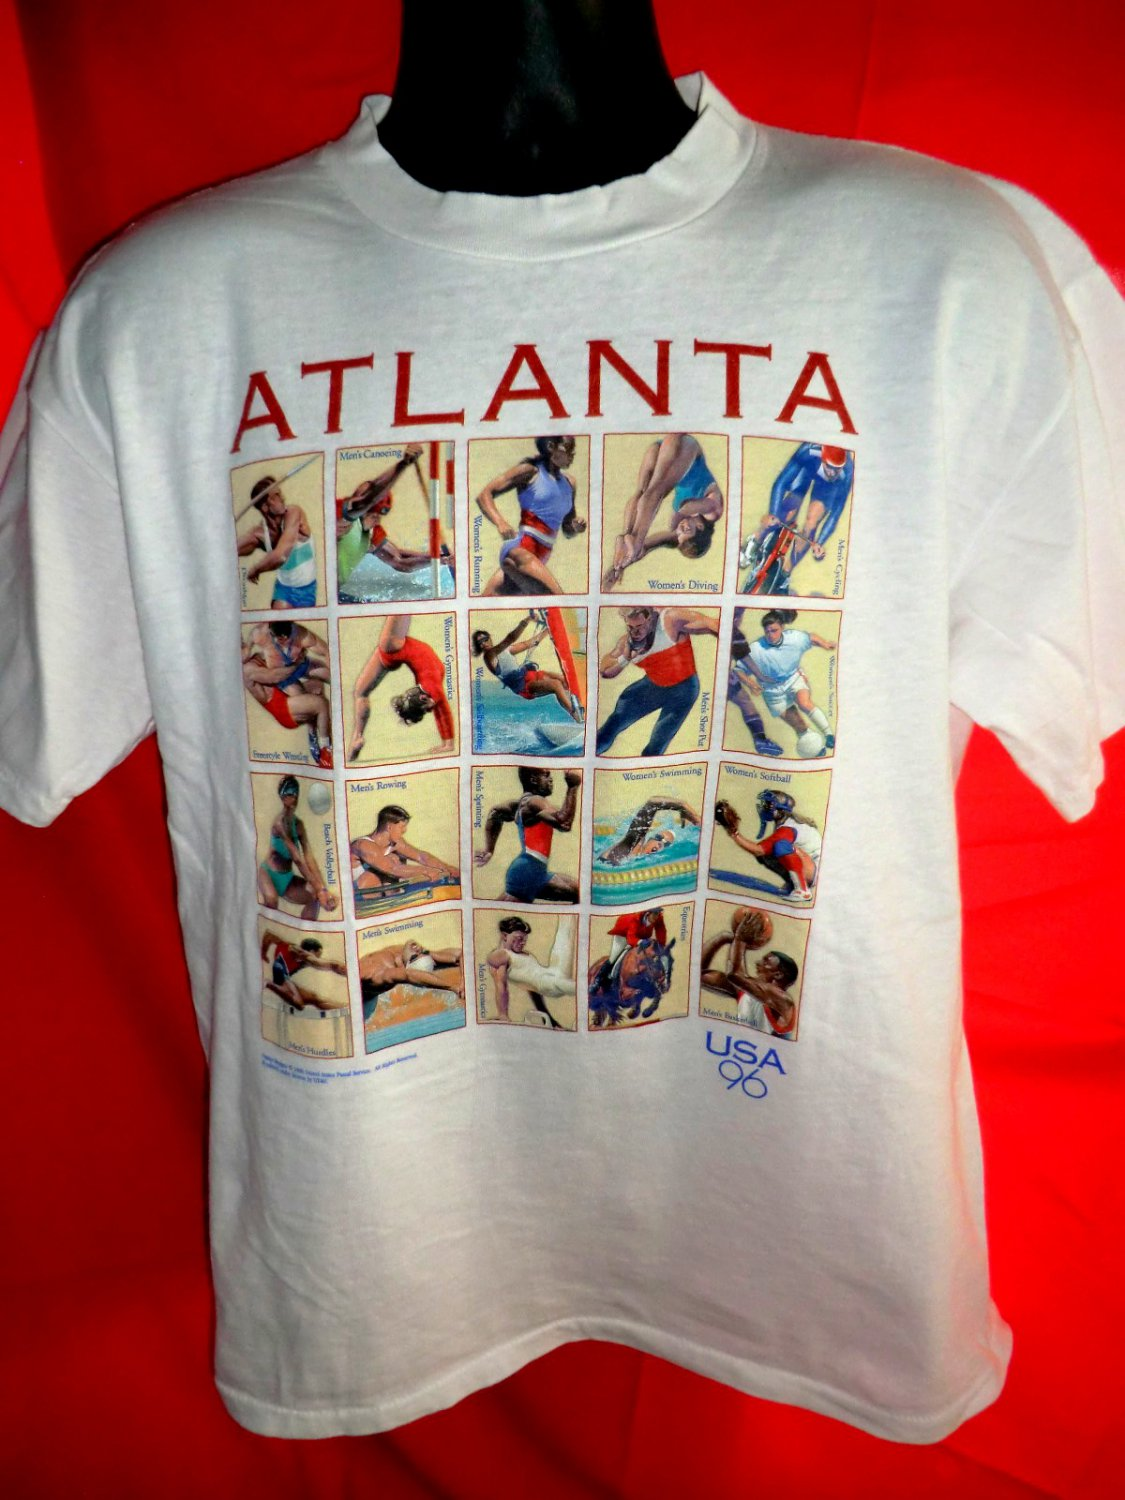 Atlanta olympics 1996 t shirt size large usps stamps design for Usps t shirt shipping